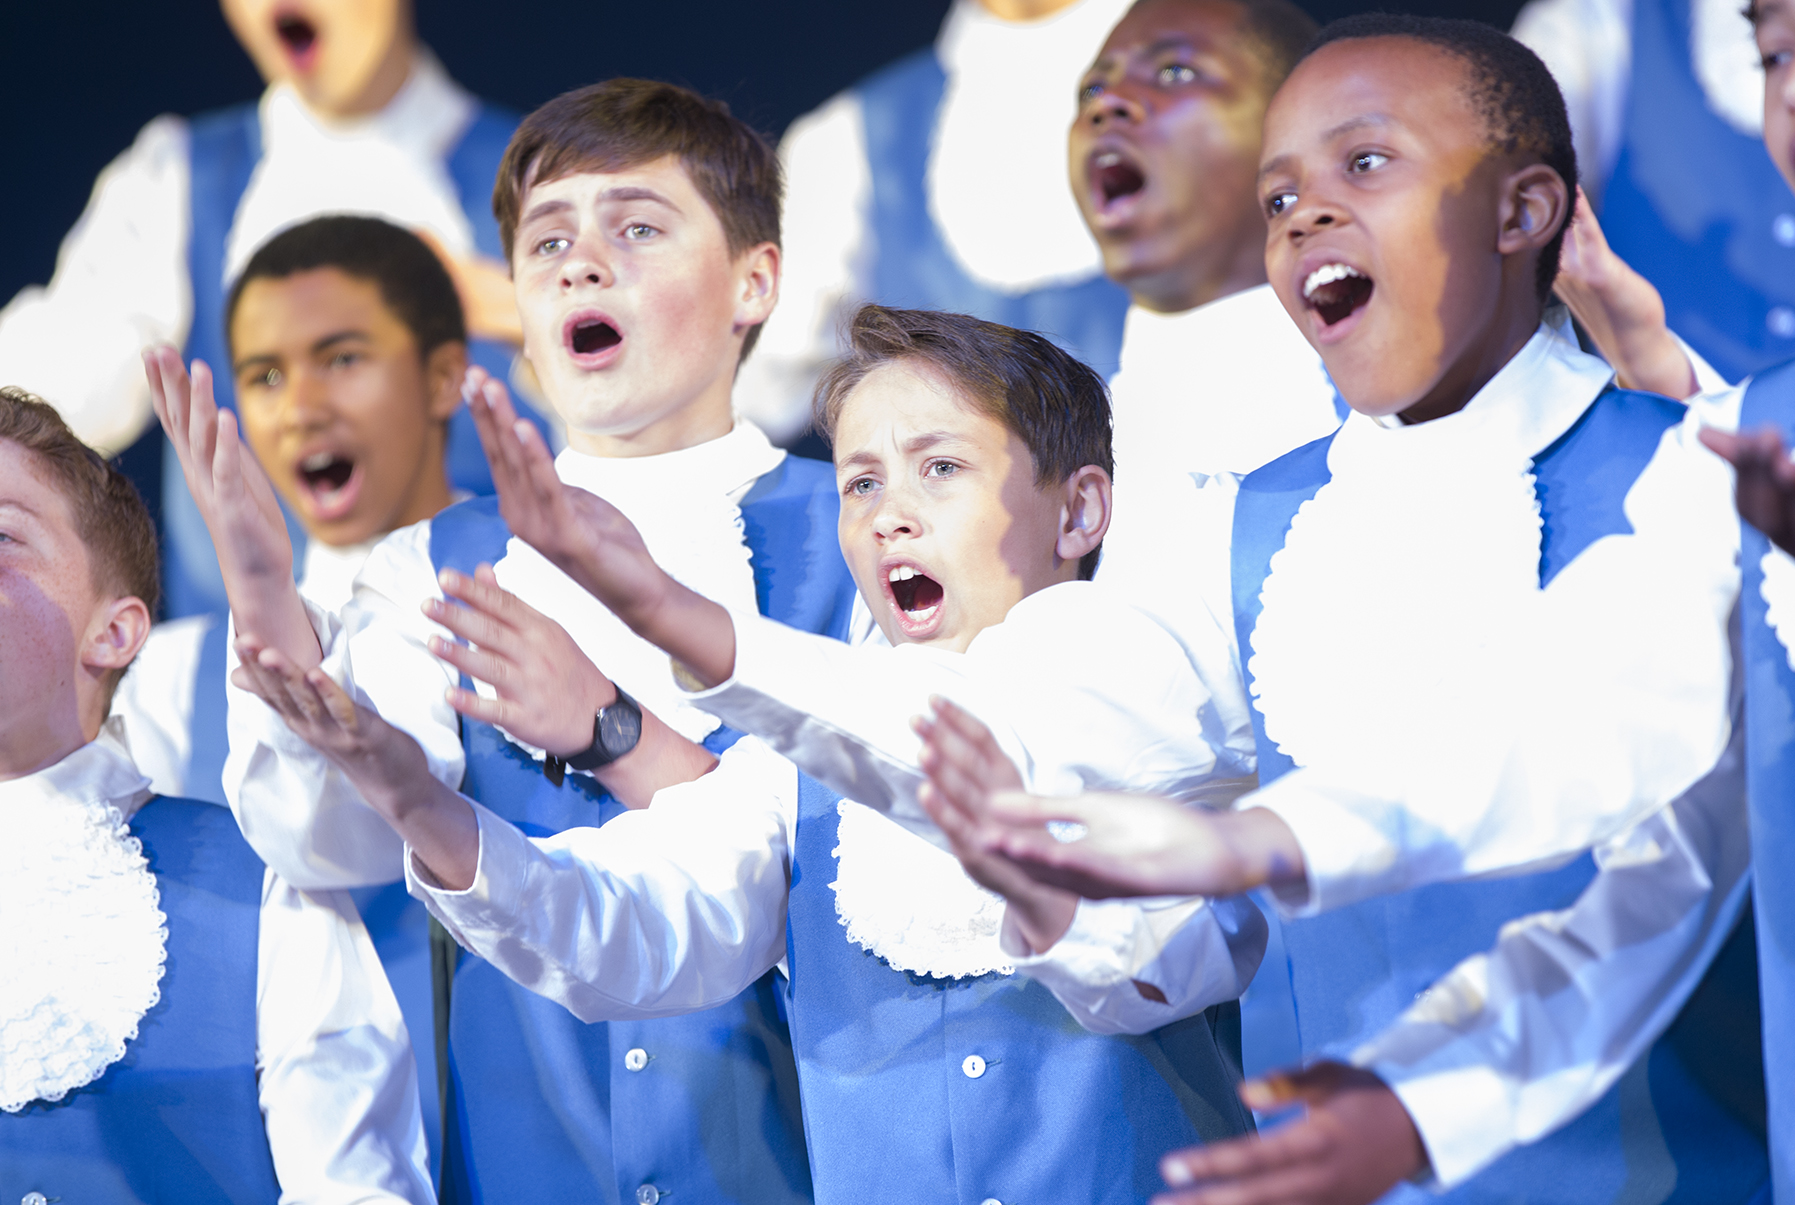 DRAKENSBERG BOYS CHOIR SCHOOL- VISITING THE CAPE PROVINCE